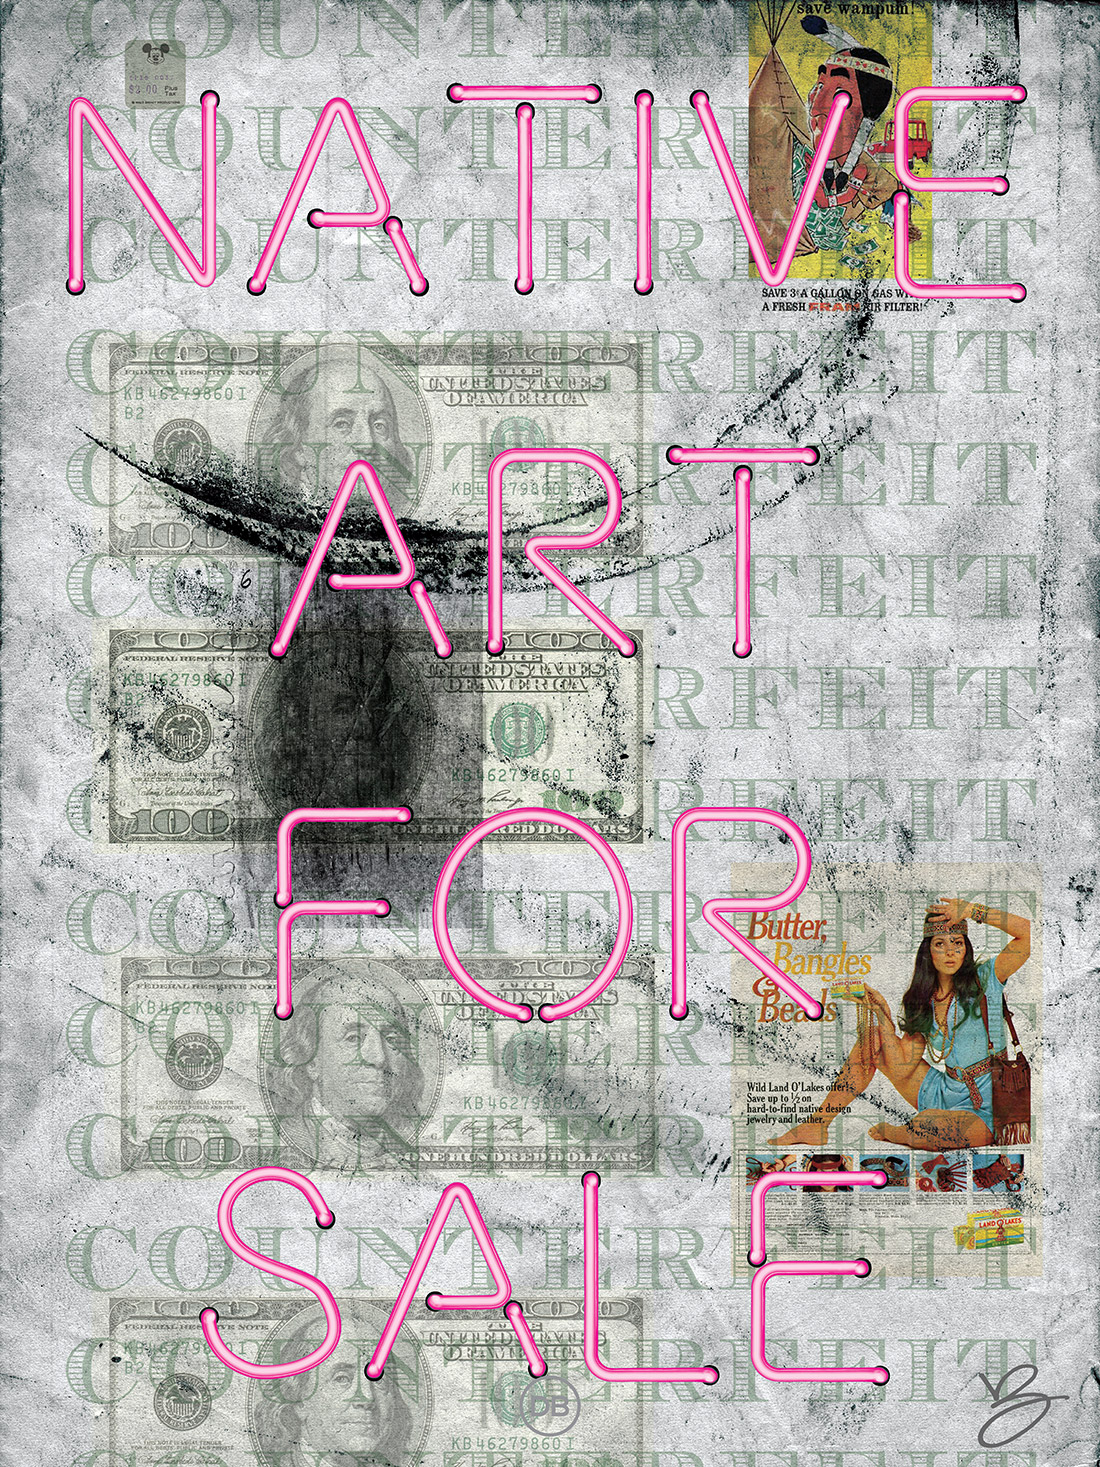 David Bernie Indian Country 52 28 Counterfeit Native American Art